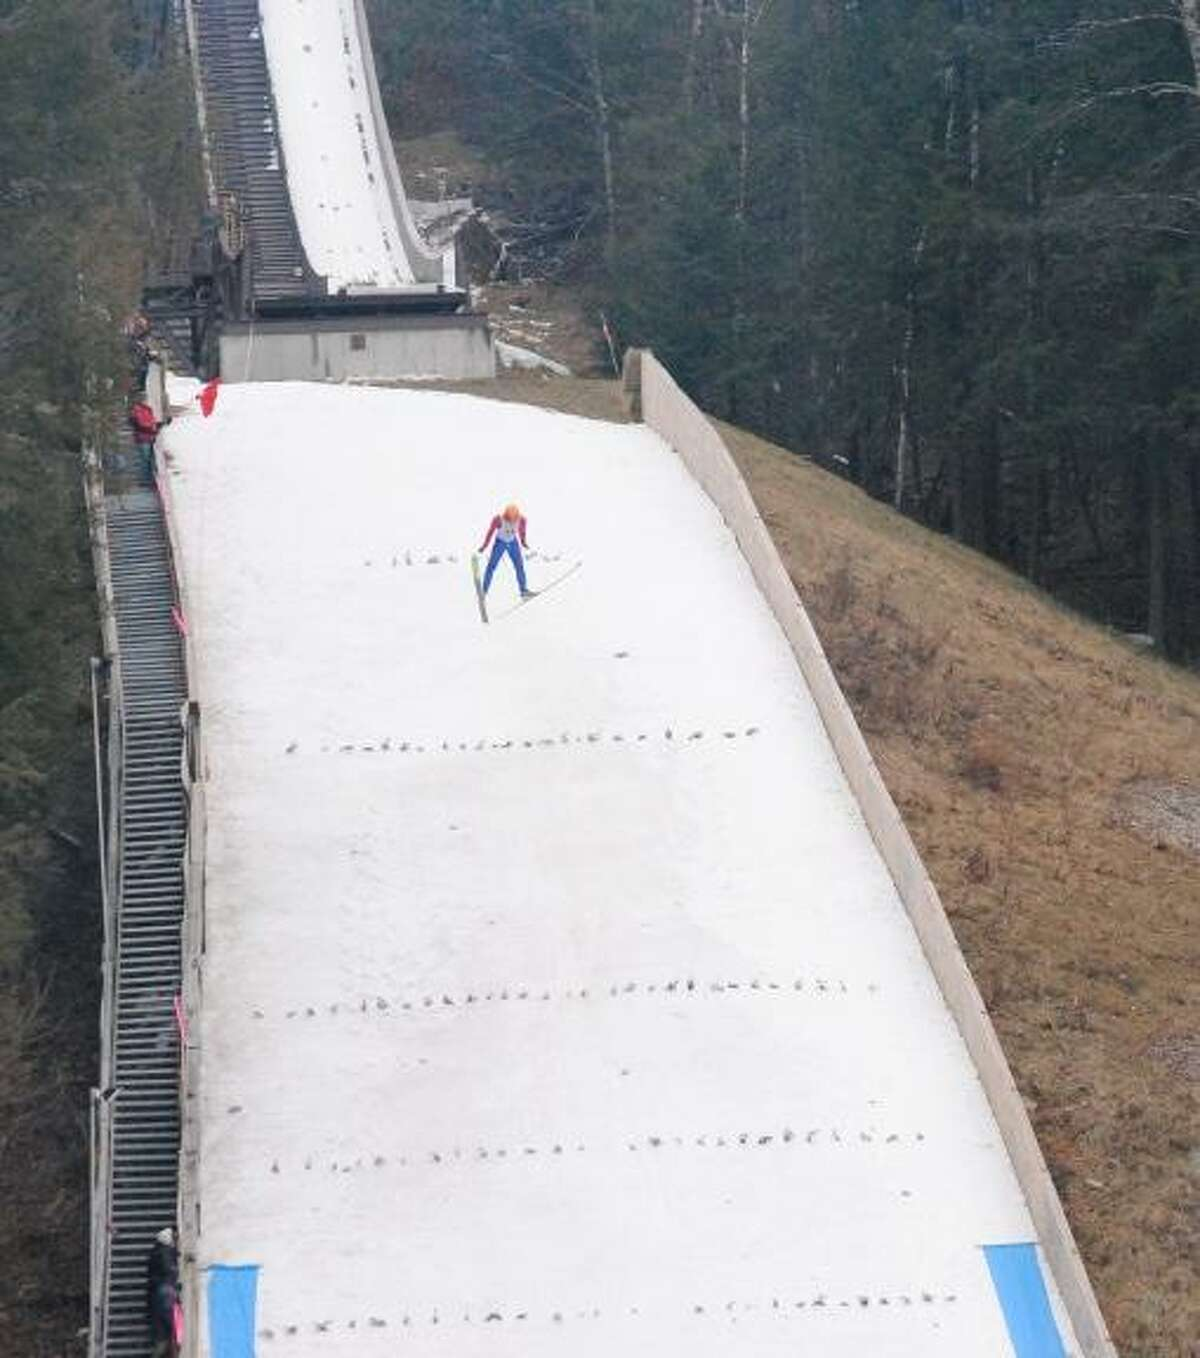 MIKE AGOGLIATI/Register Citizen Skier Chris Jones heads down the mountain for his jump at Jump Fest, held this weekend at Satre Hill in Salisbury.